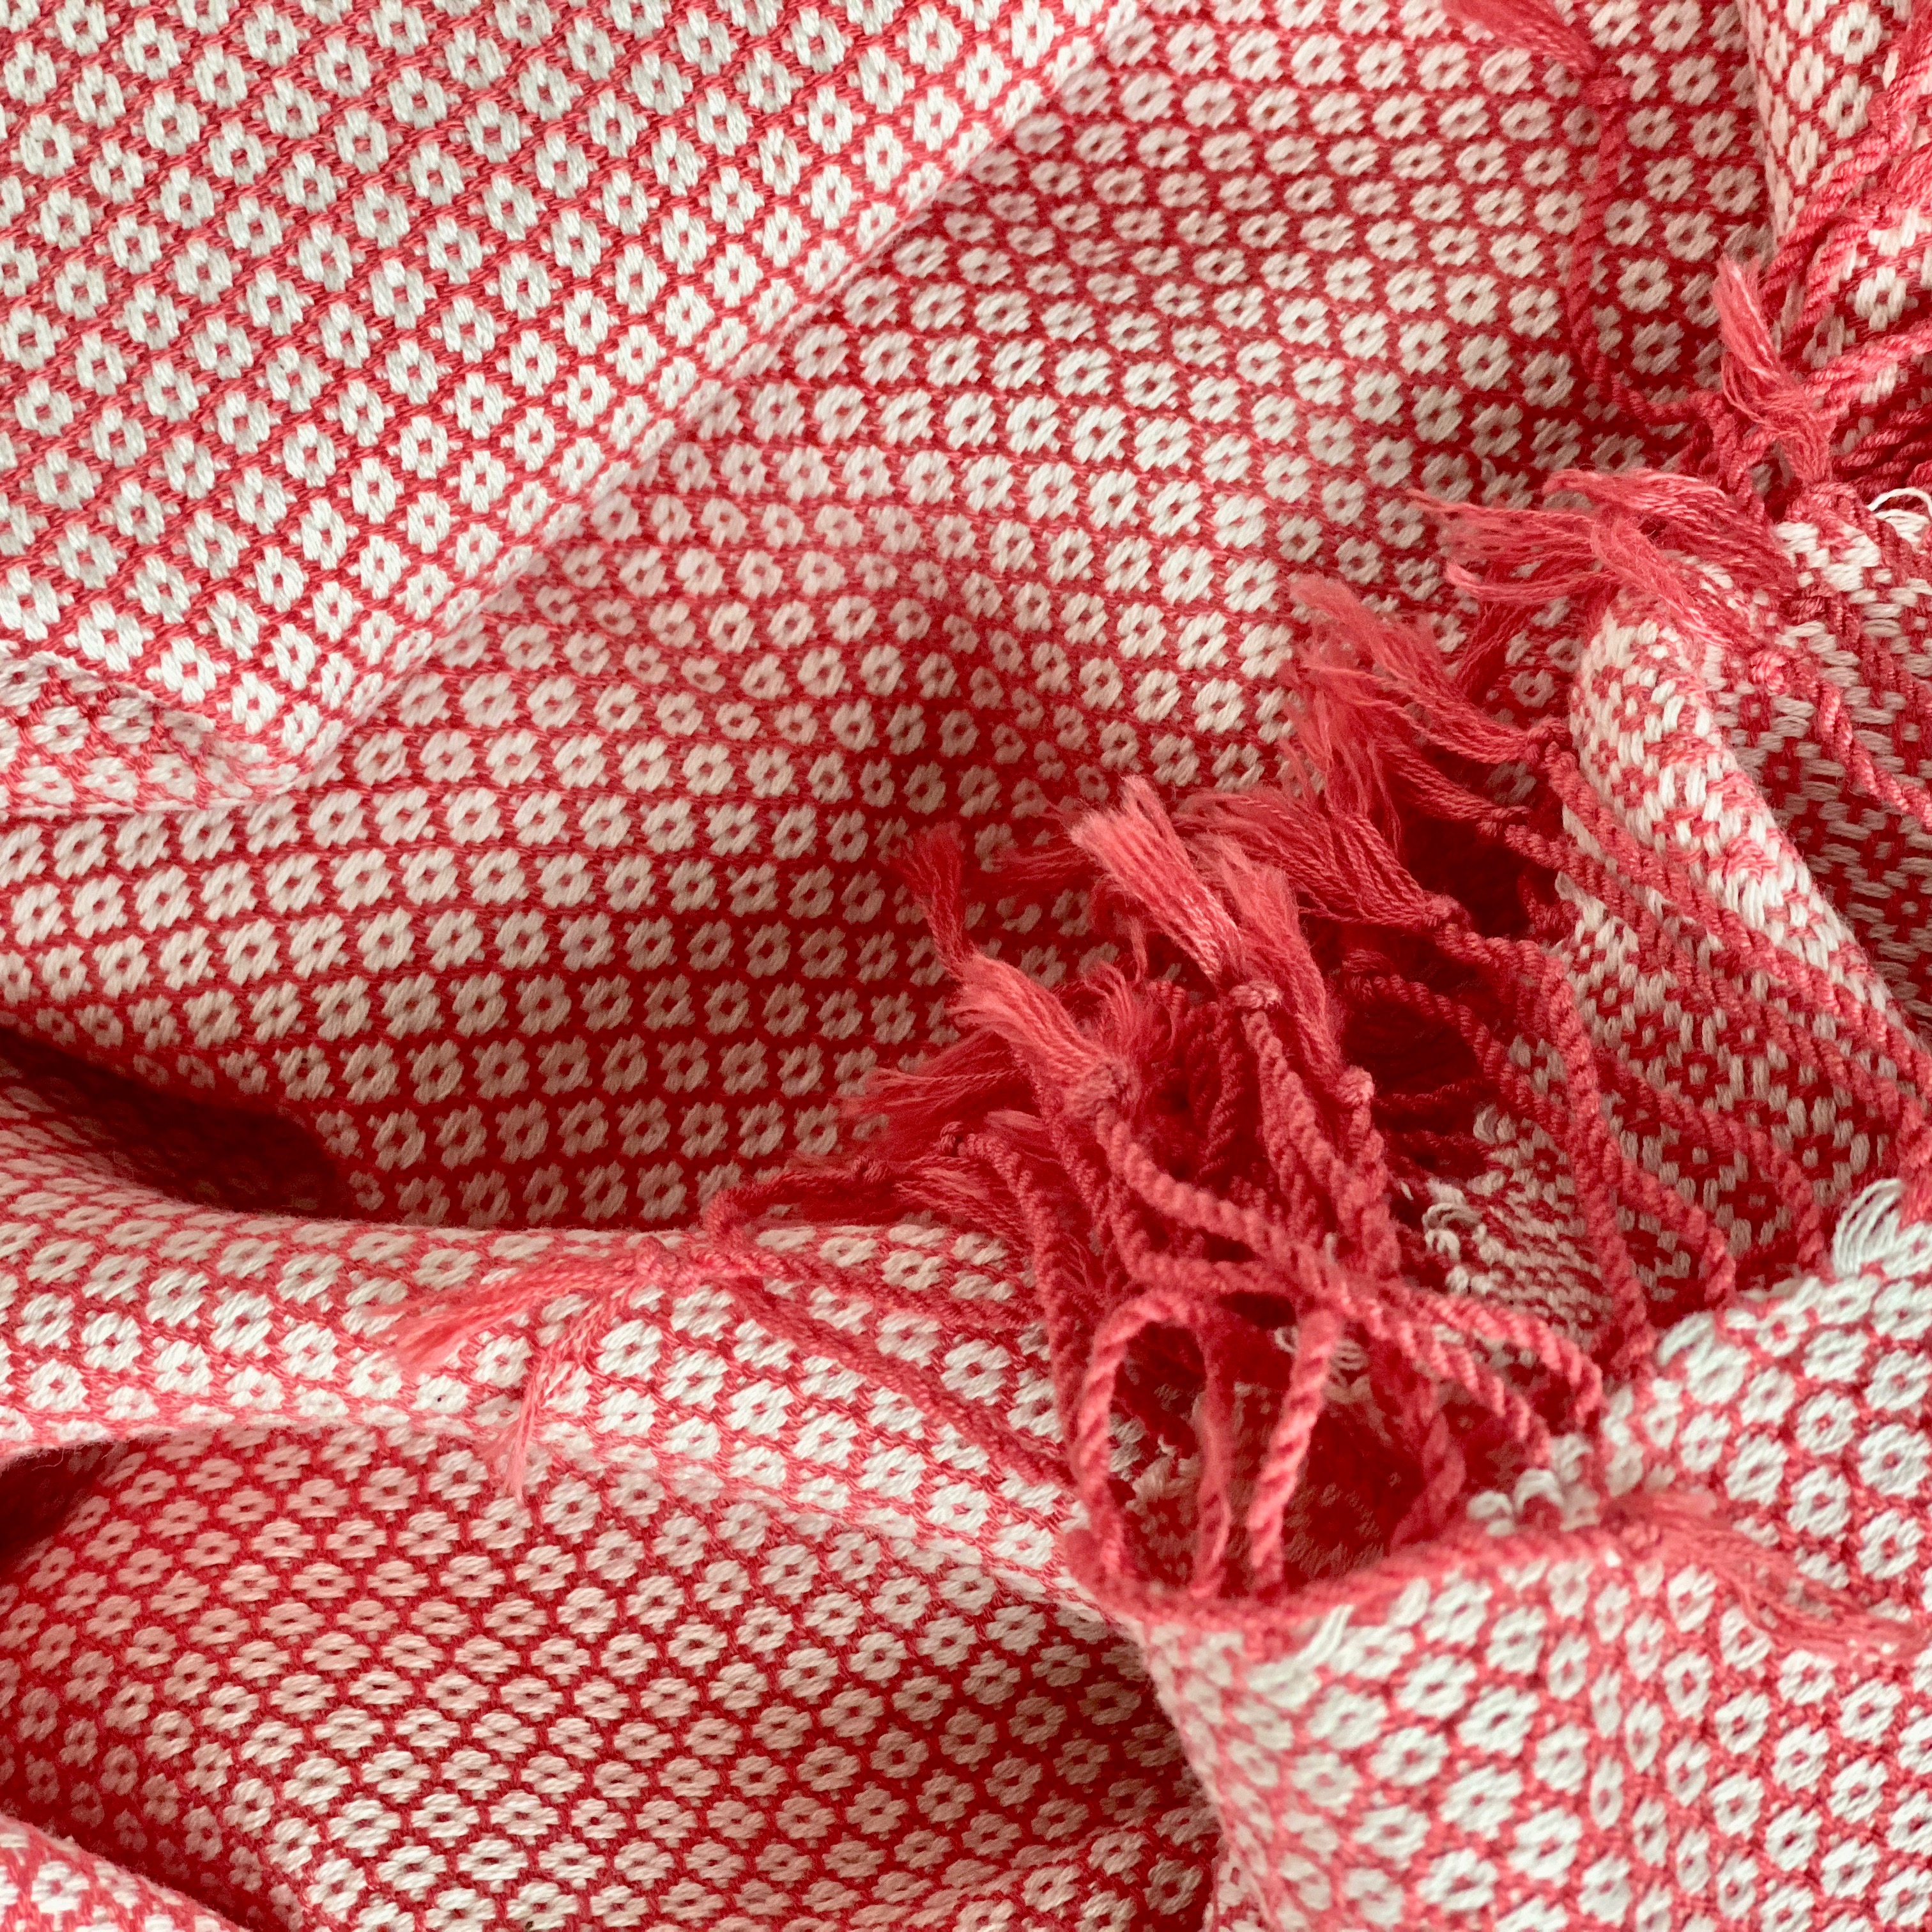 Coral scarf in diamond pattern